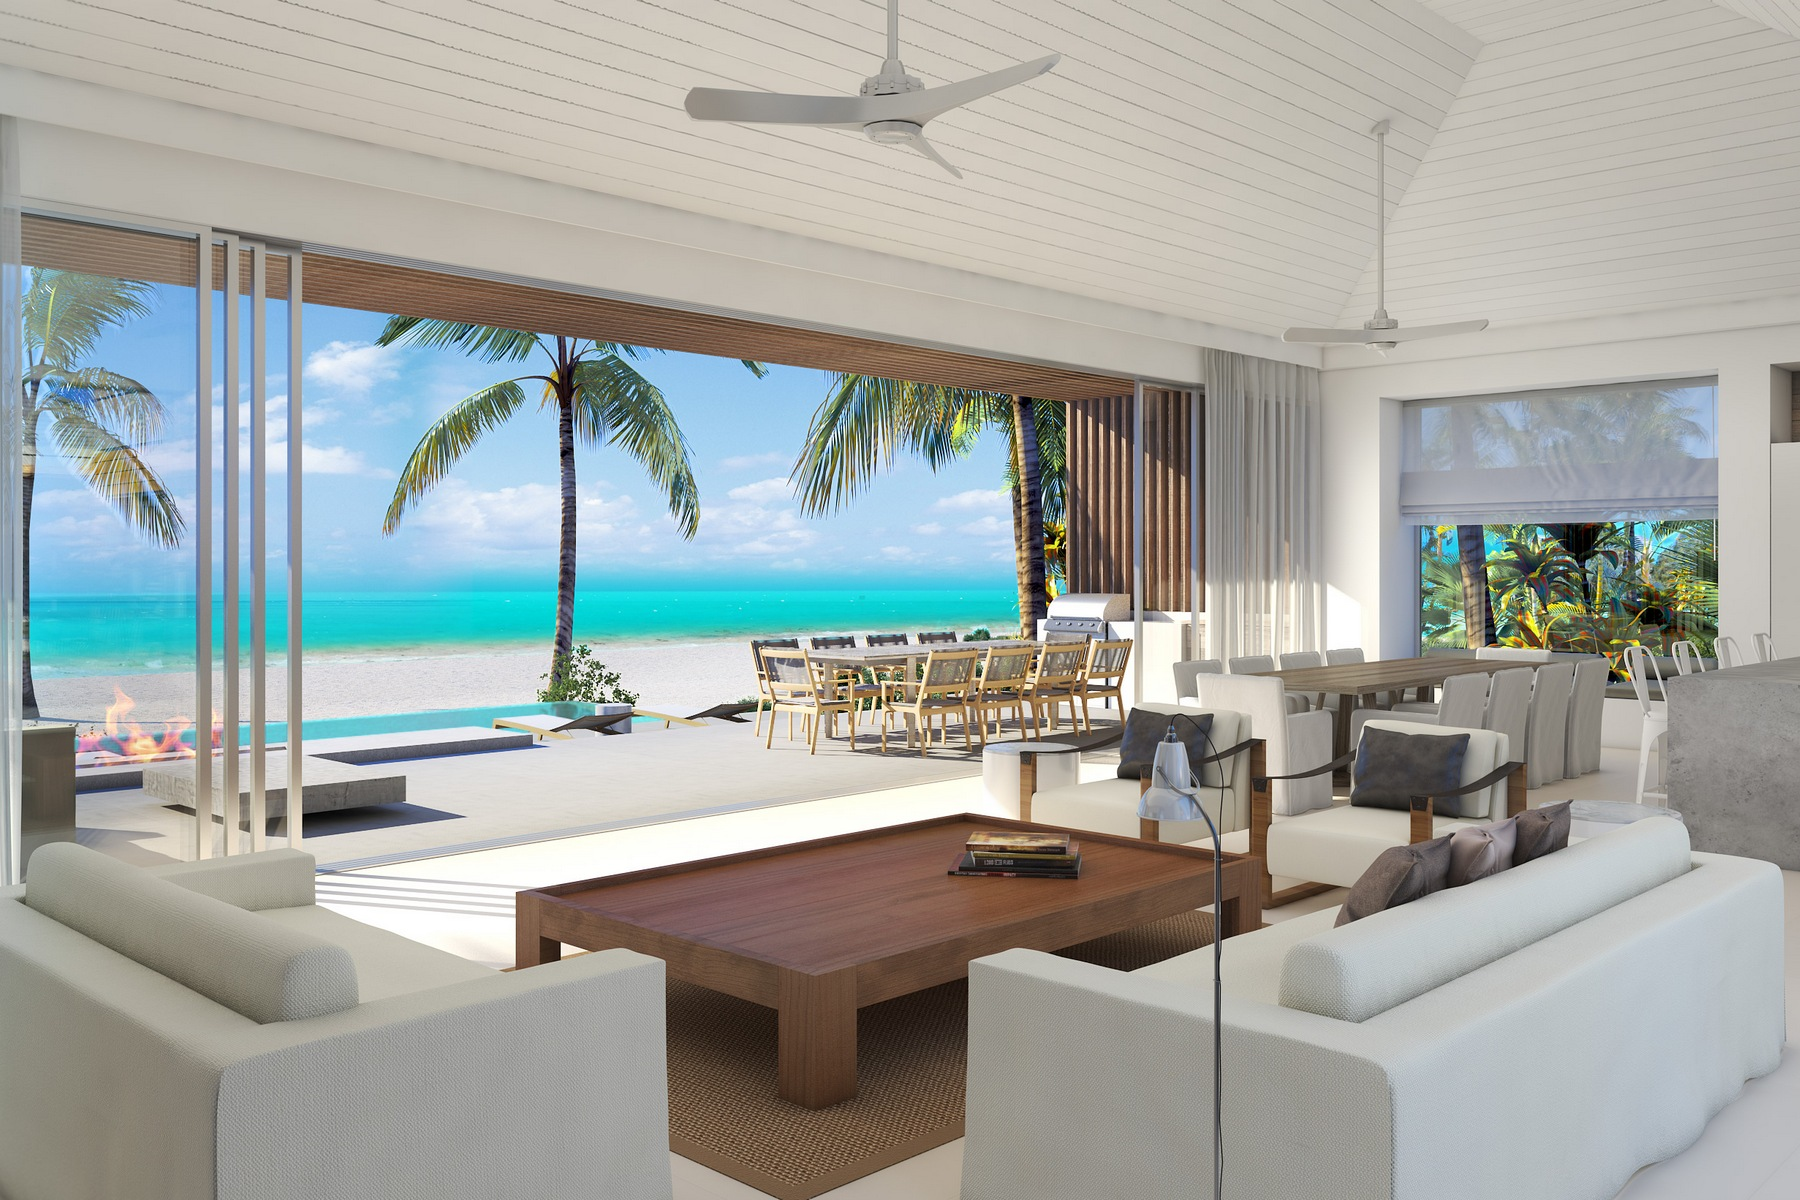 Additional photo for property listing at BEACH ENCLAVE LONG BAY - Design One 5B Beachfront Long Bay, Провиденсьялес TCI Теркс И Кайкос